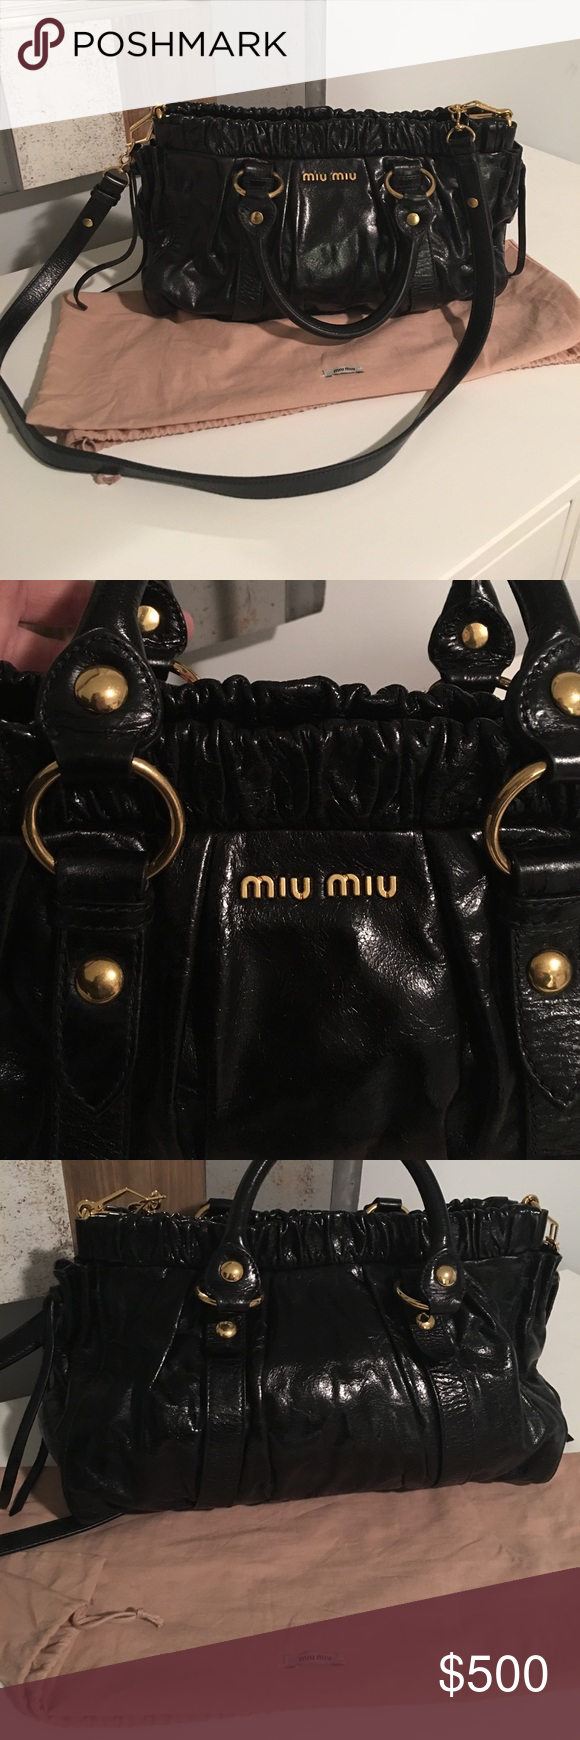 99d9656149cc Auth Miu Miu Black Gathered Tote Gold Hardware This is an authentic MIU MIU